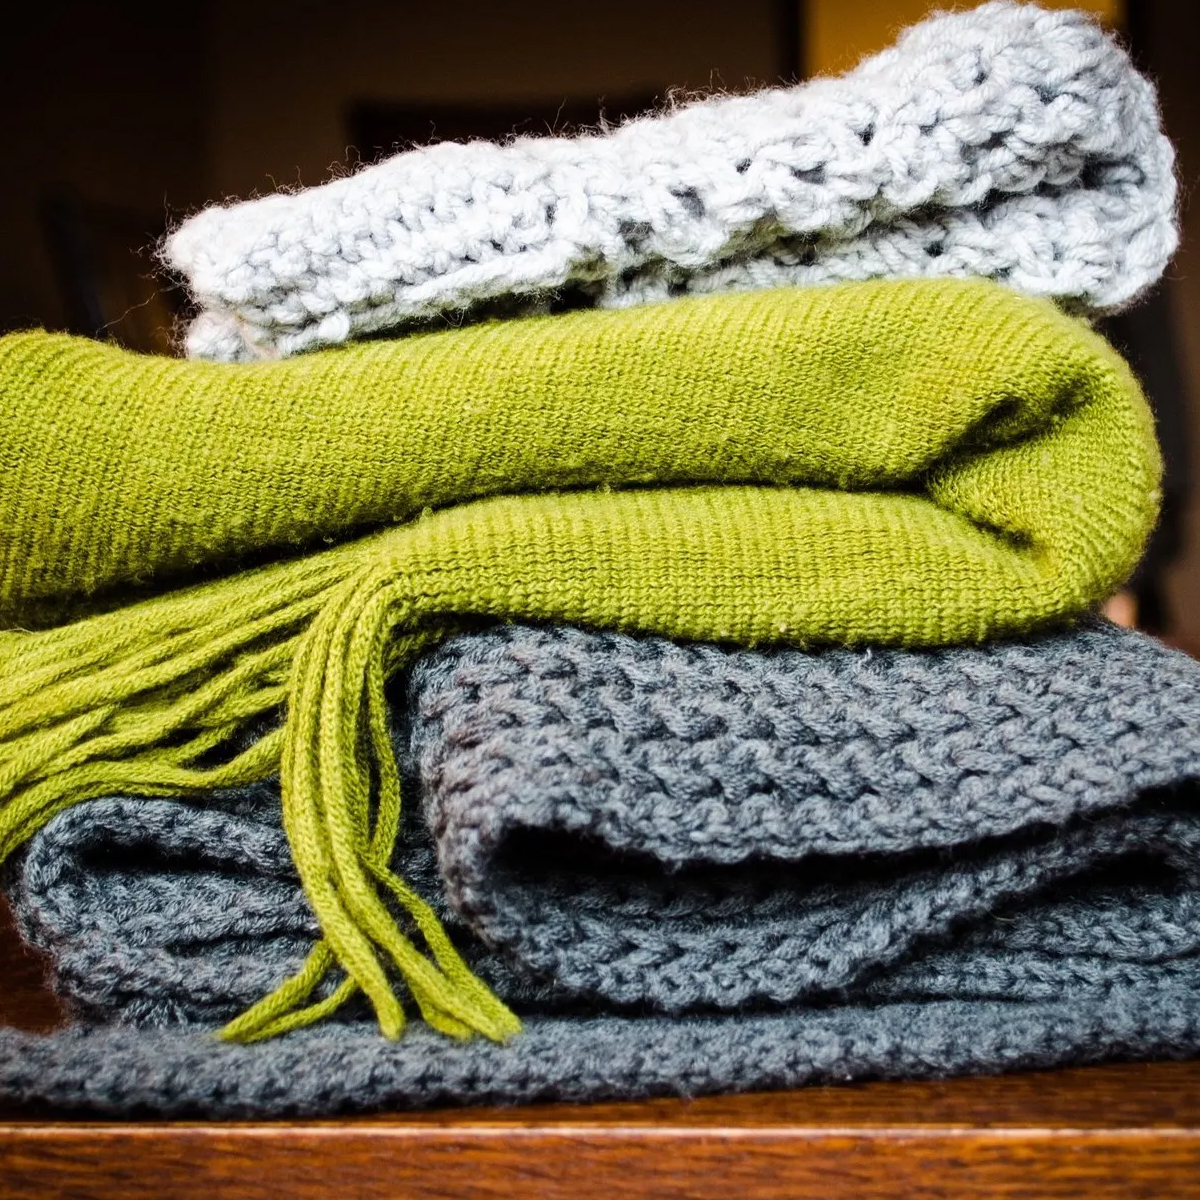 Preparing for Winter Weather from the Coalition for the Homeless